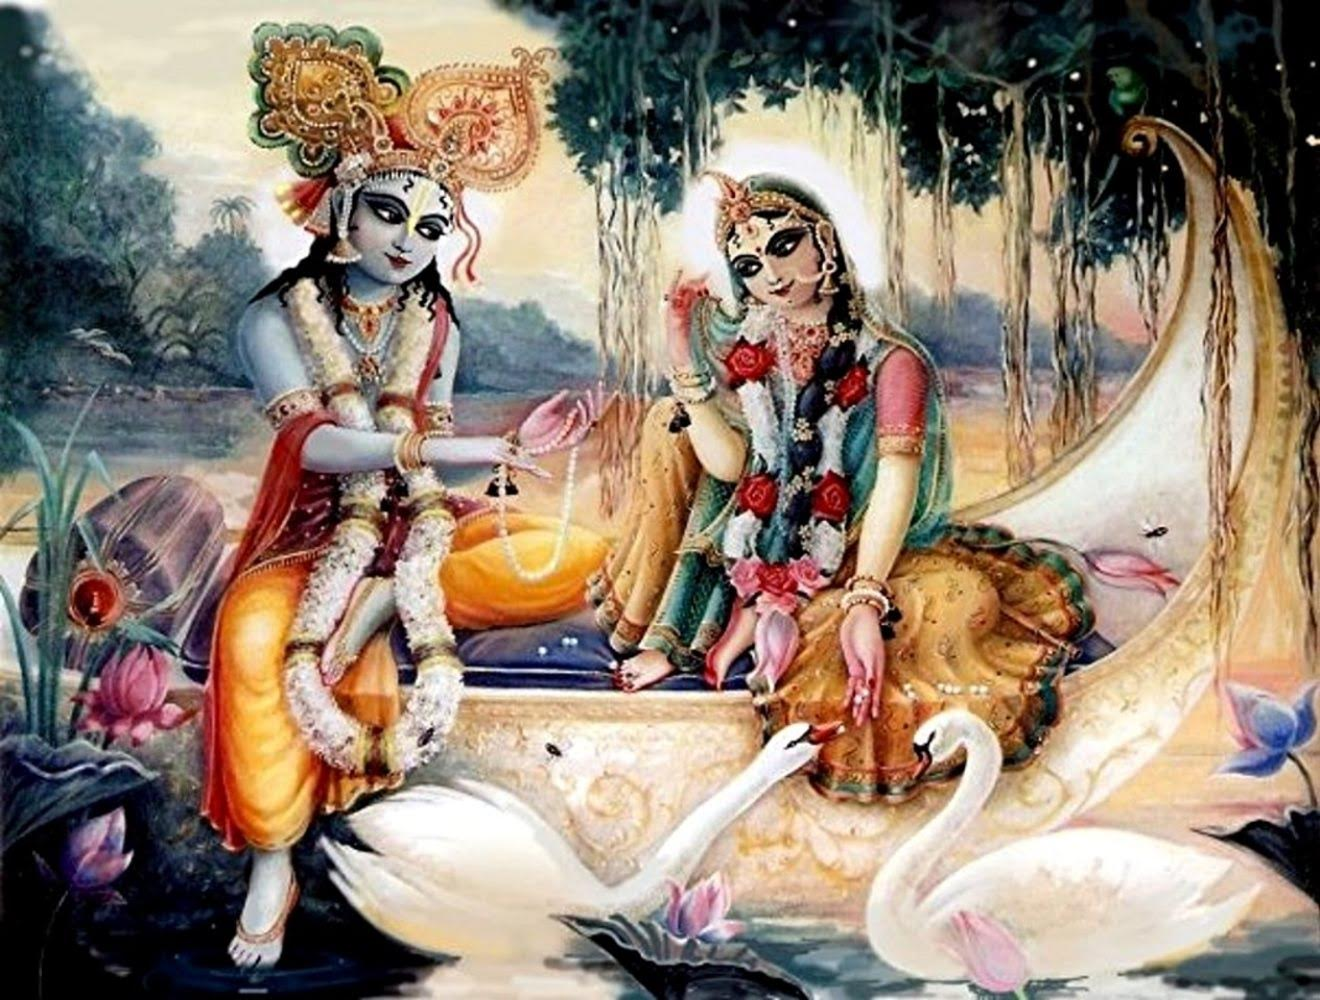 Radha and Krsna boat